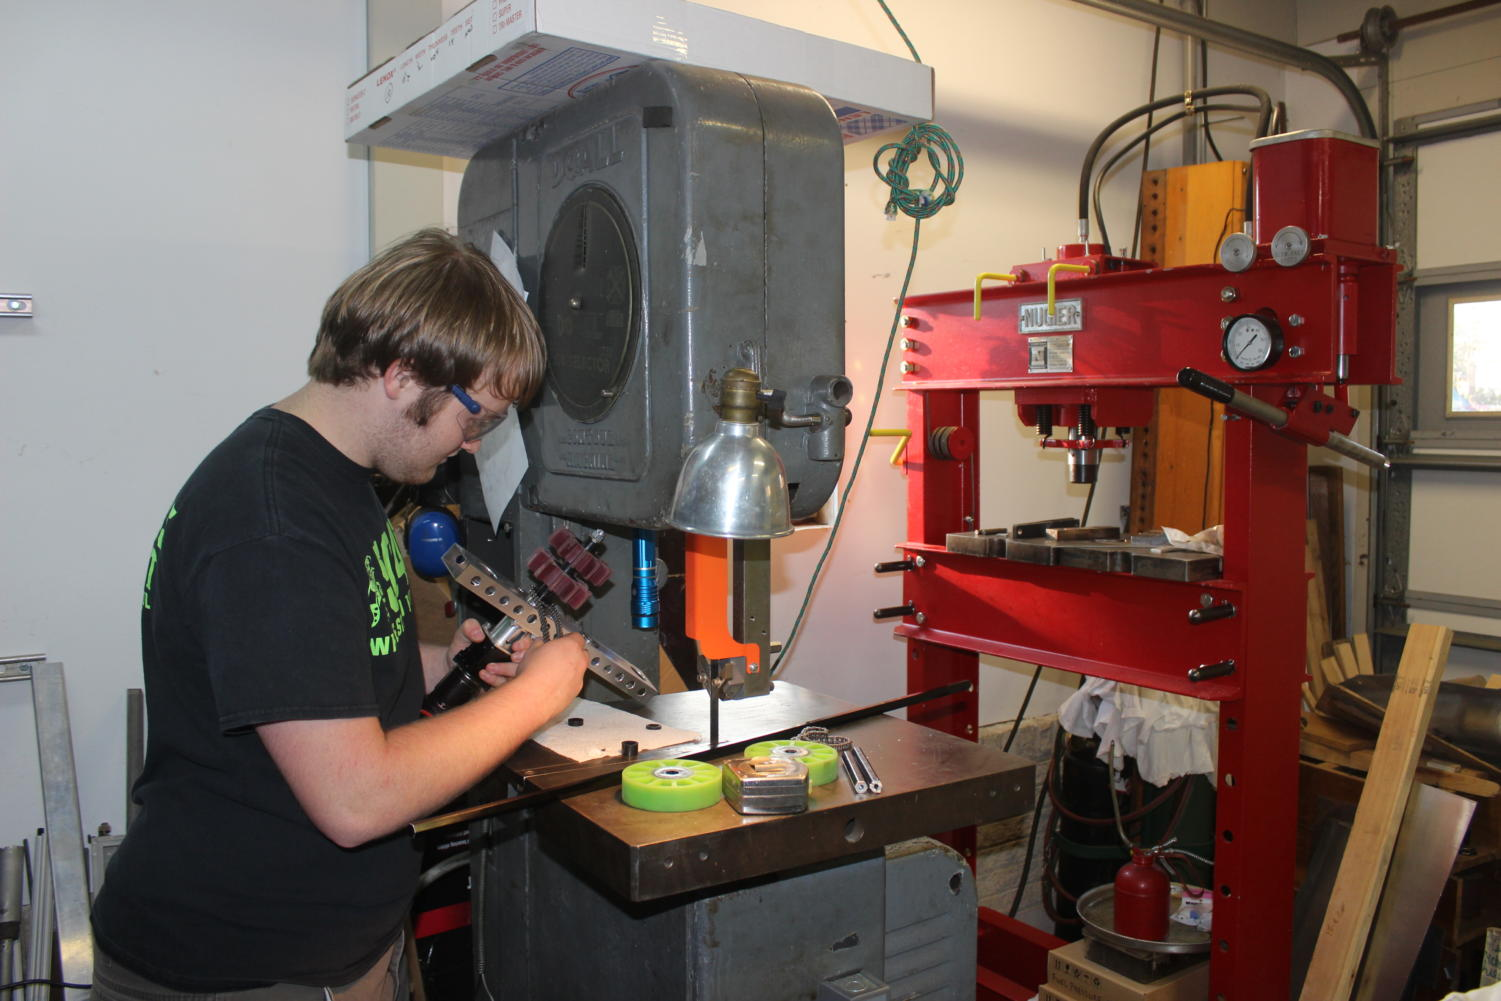 Evans works on building a robot in an MLGW worker's machine shop after school for a competition in Huntsville from March 15 to 17.